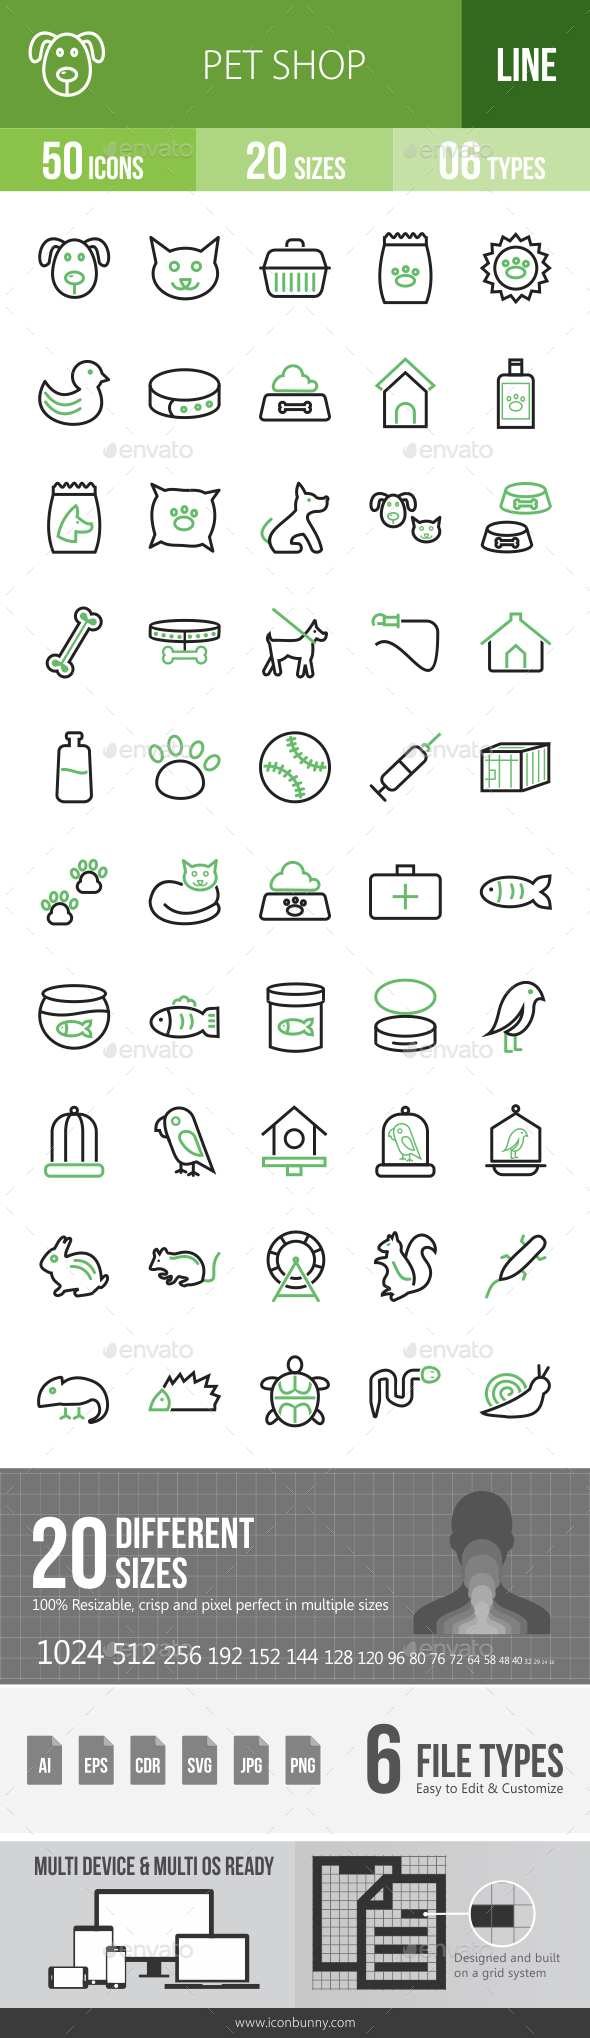 Pet Shop Line Green & Black Icons - Icons